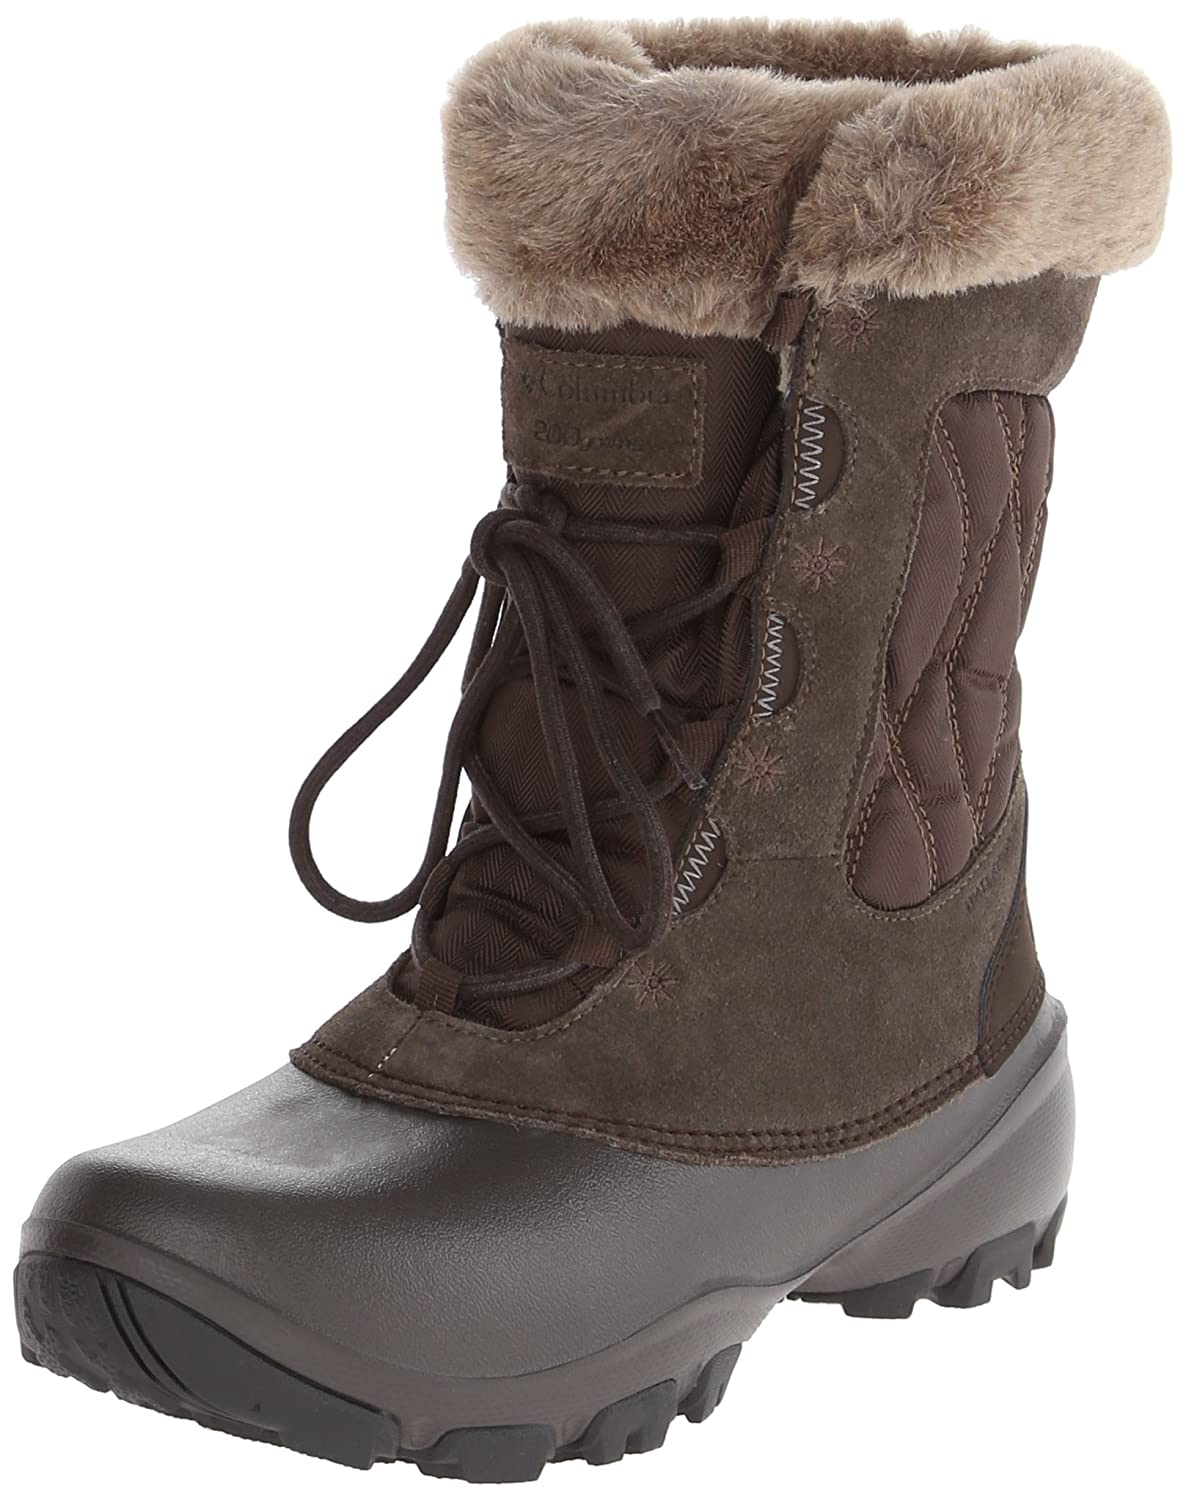 Columbia Women's Sierra Summette IV Winter Boot B00GW95DSM 6 B(M) US|Cordovan, Tusk